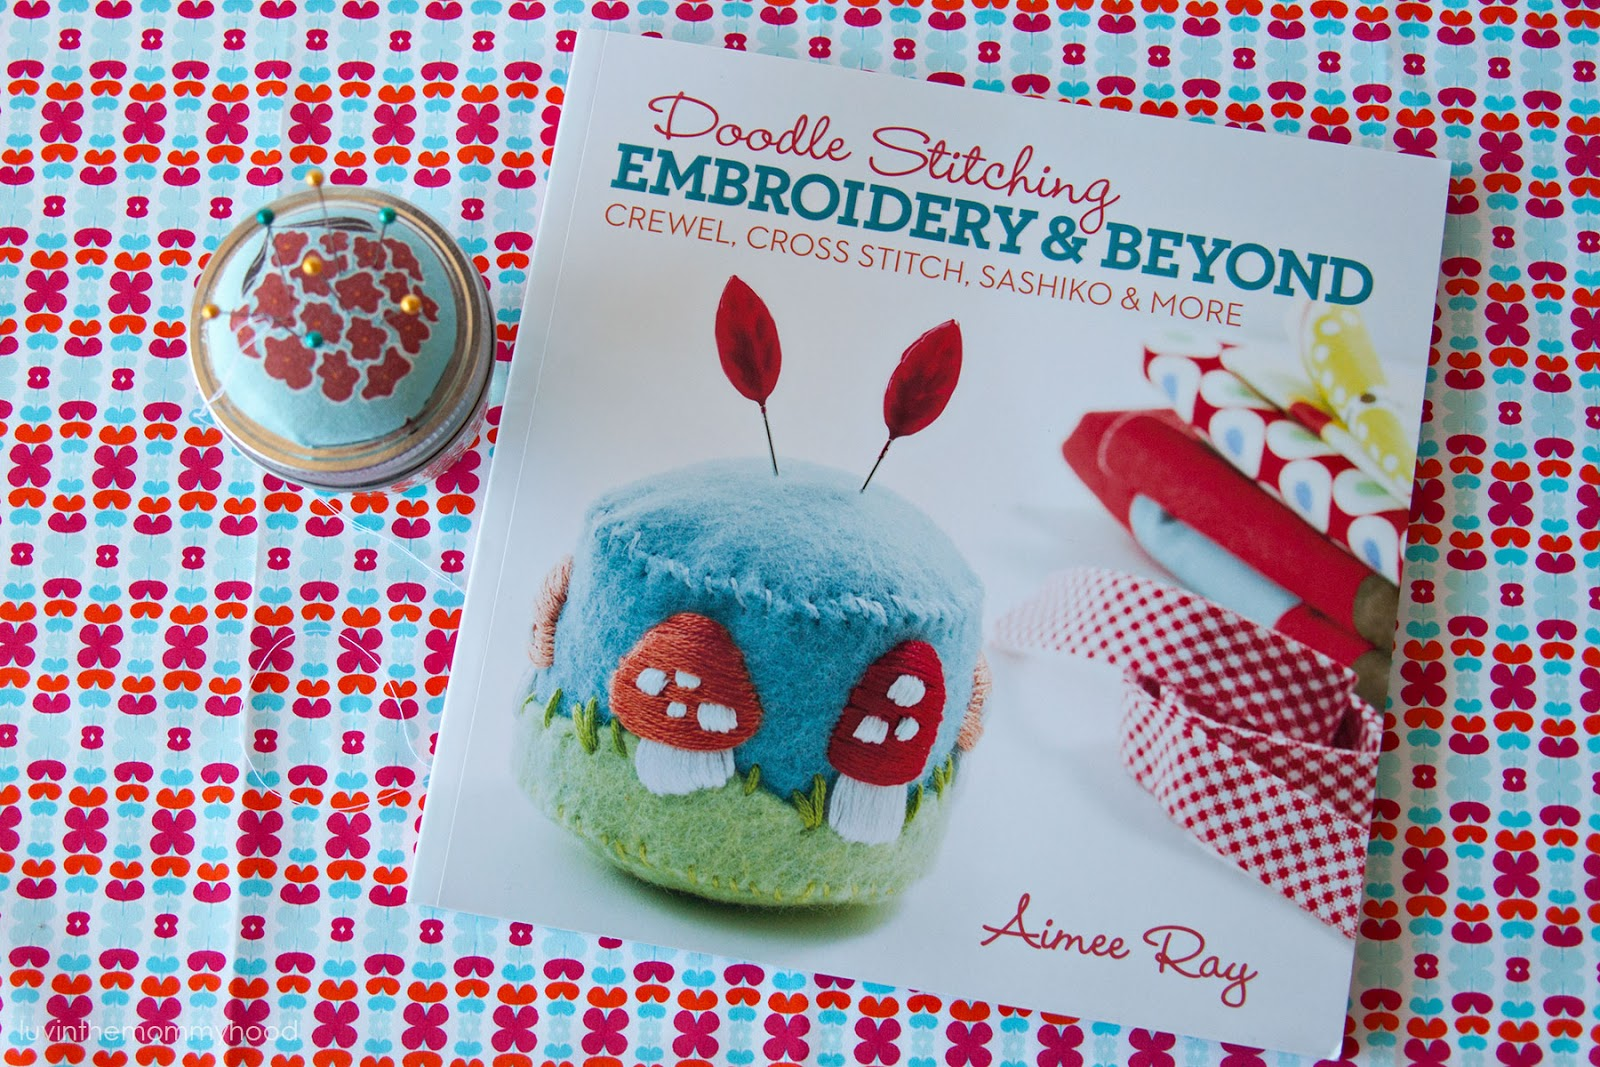 doodle stitching book review & giveaway on luvinthemommyhood.com